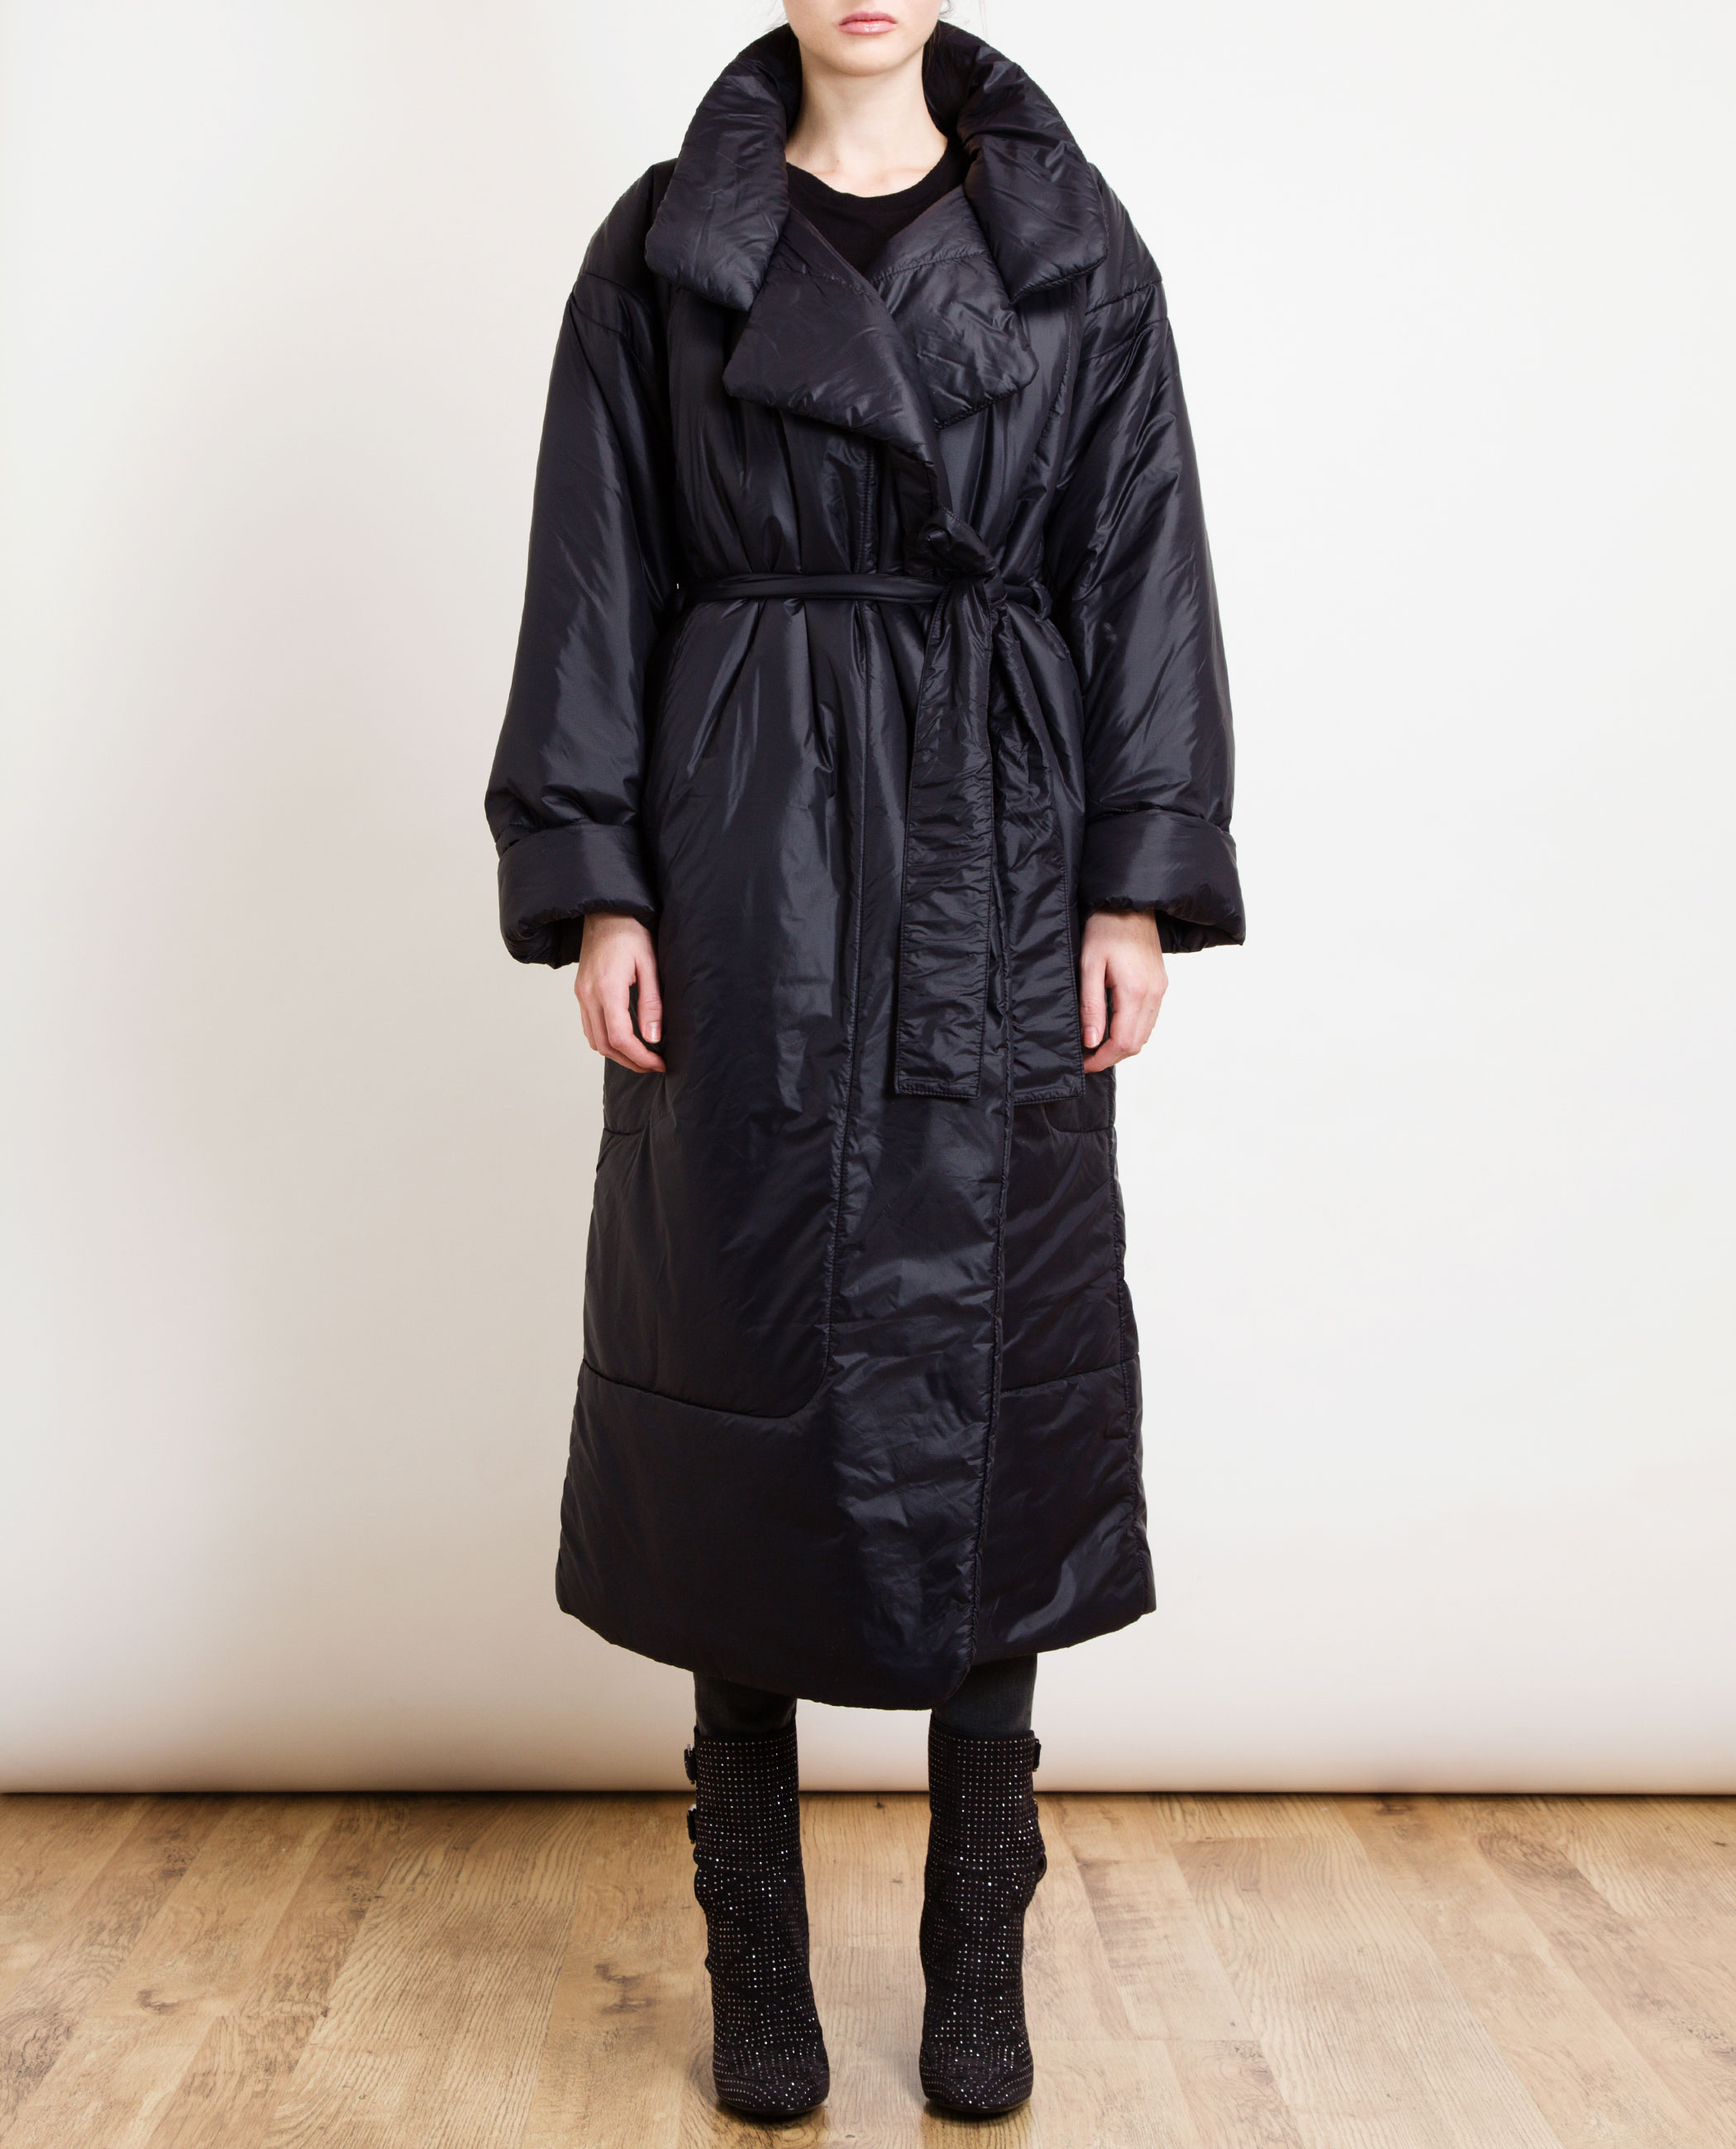 Lyst Norma Kamali Reversible Sleeping Bag Long Coat In Black